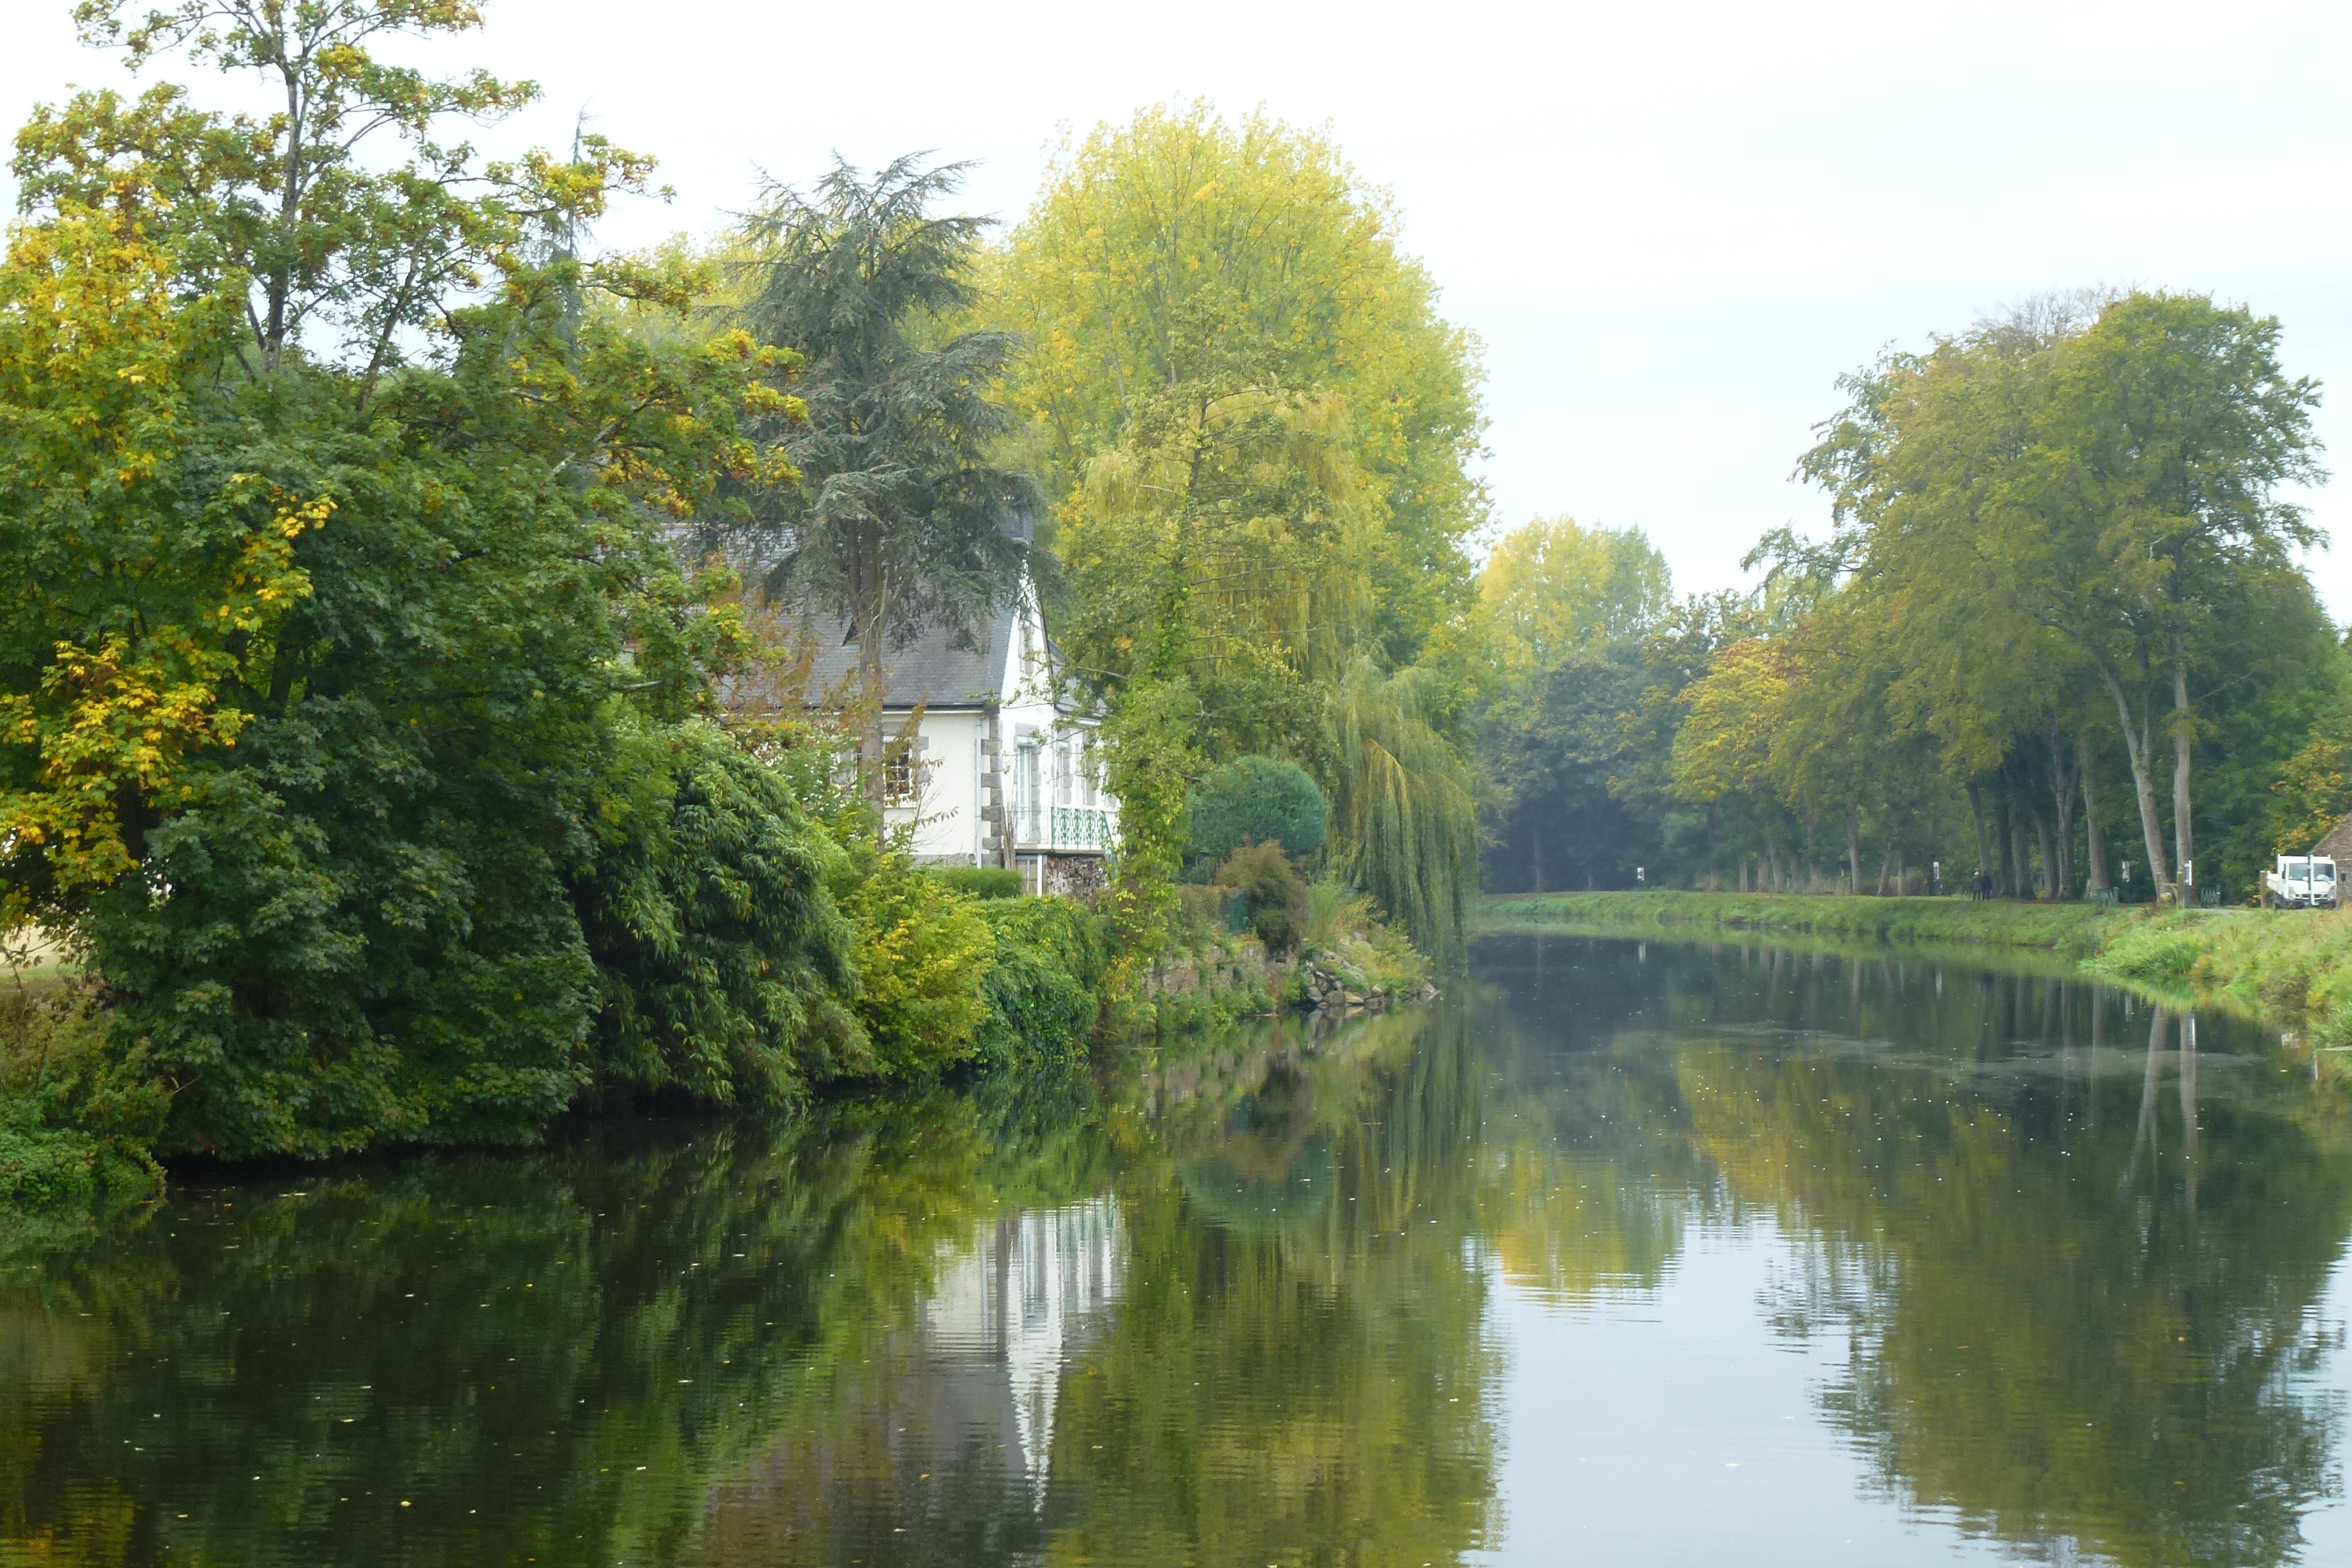 The Brest - Nantes Canal at Josselin.